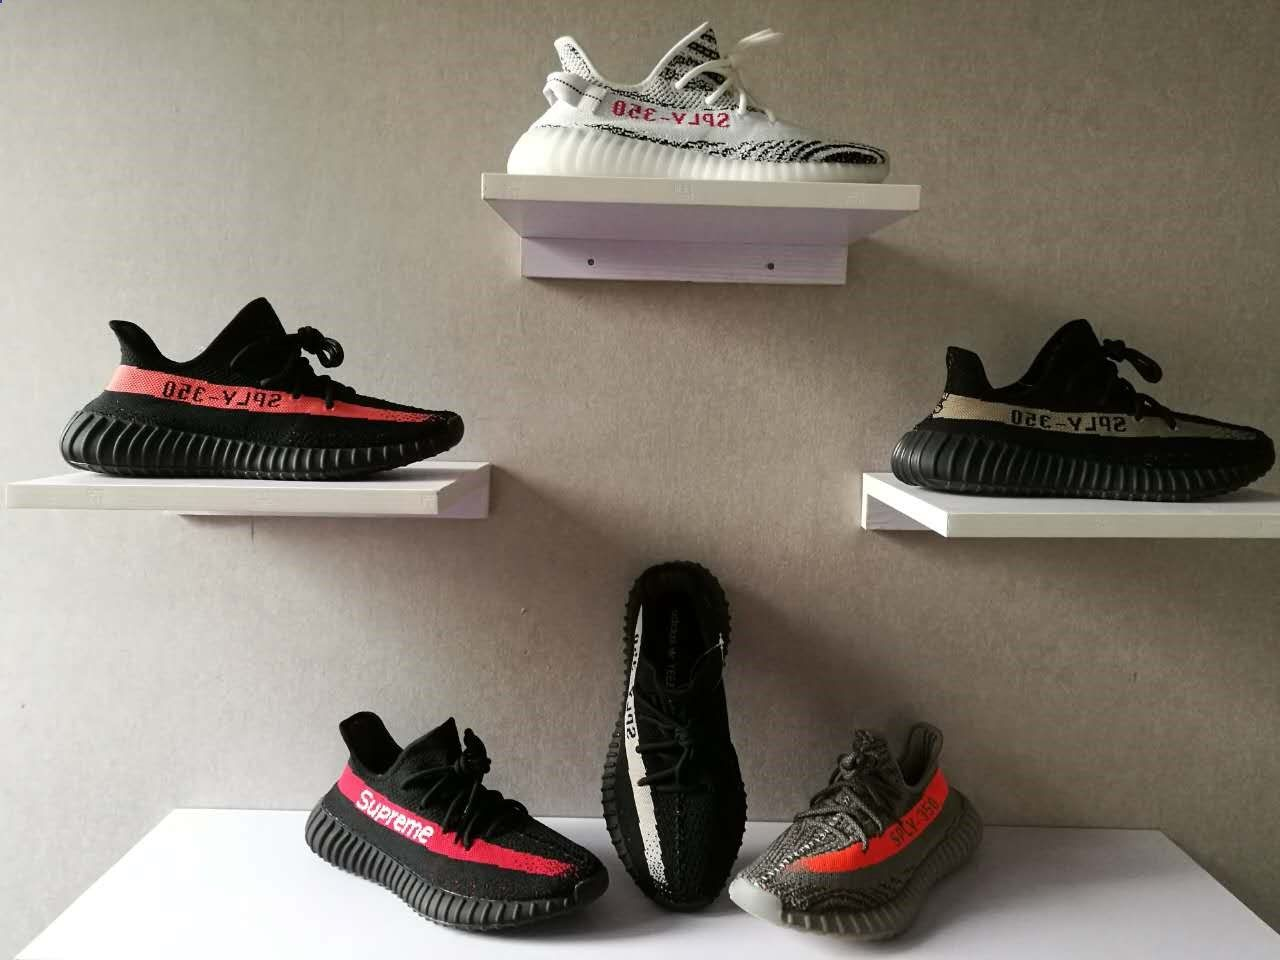 finest selection 12054 a0bc1 Adidas Yeezy Boost 350 V2 All colour.Which one do you like